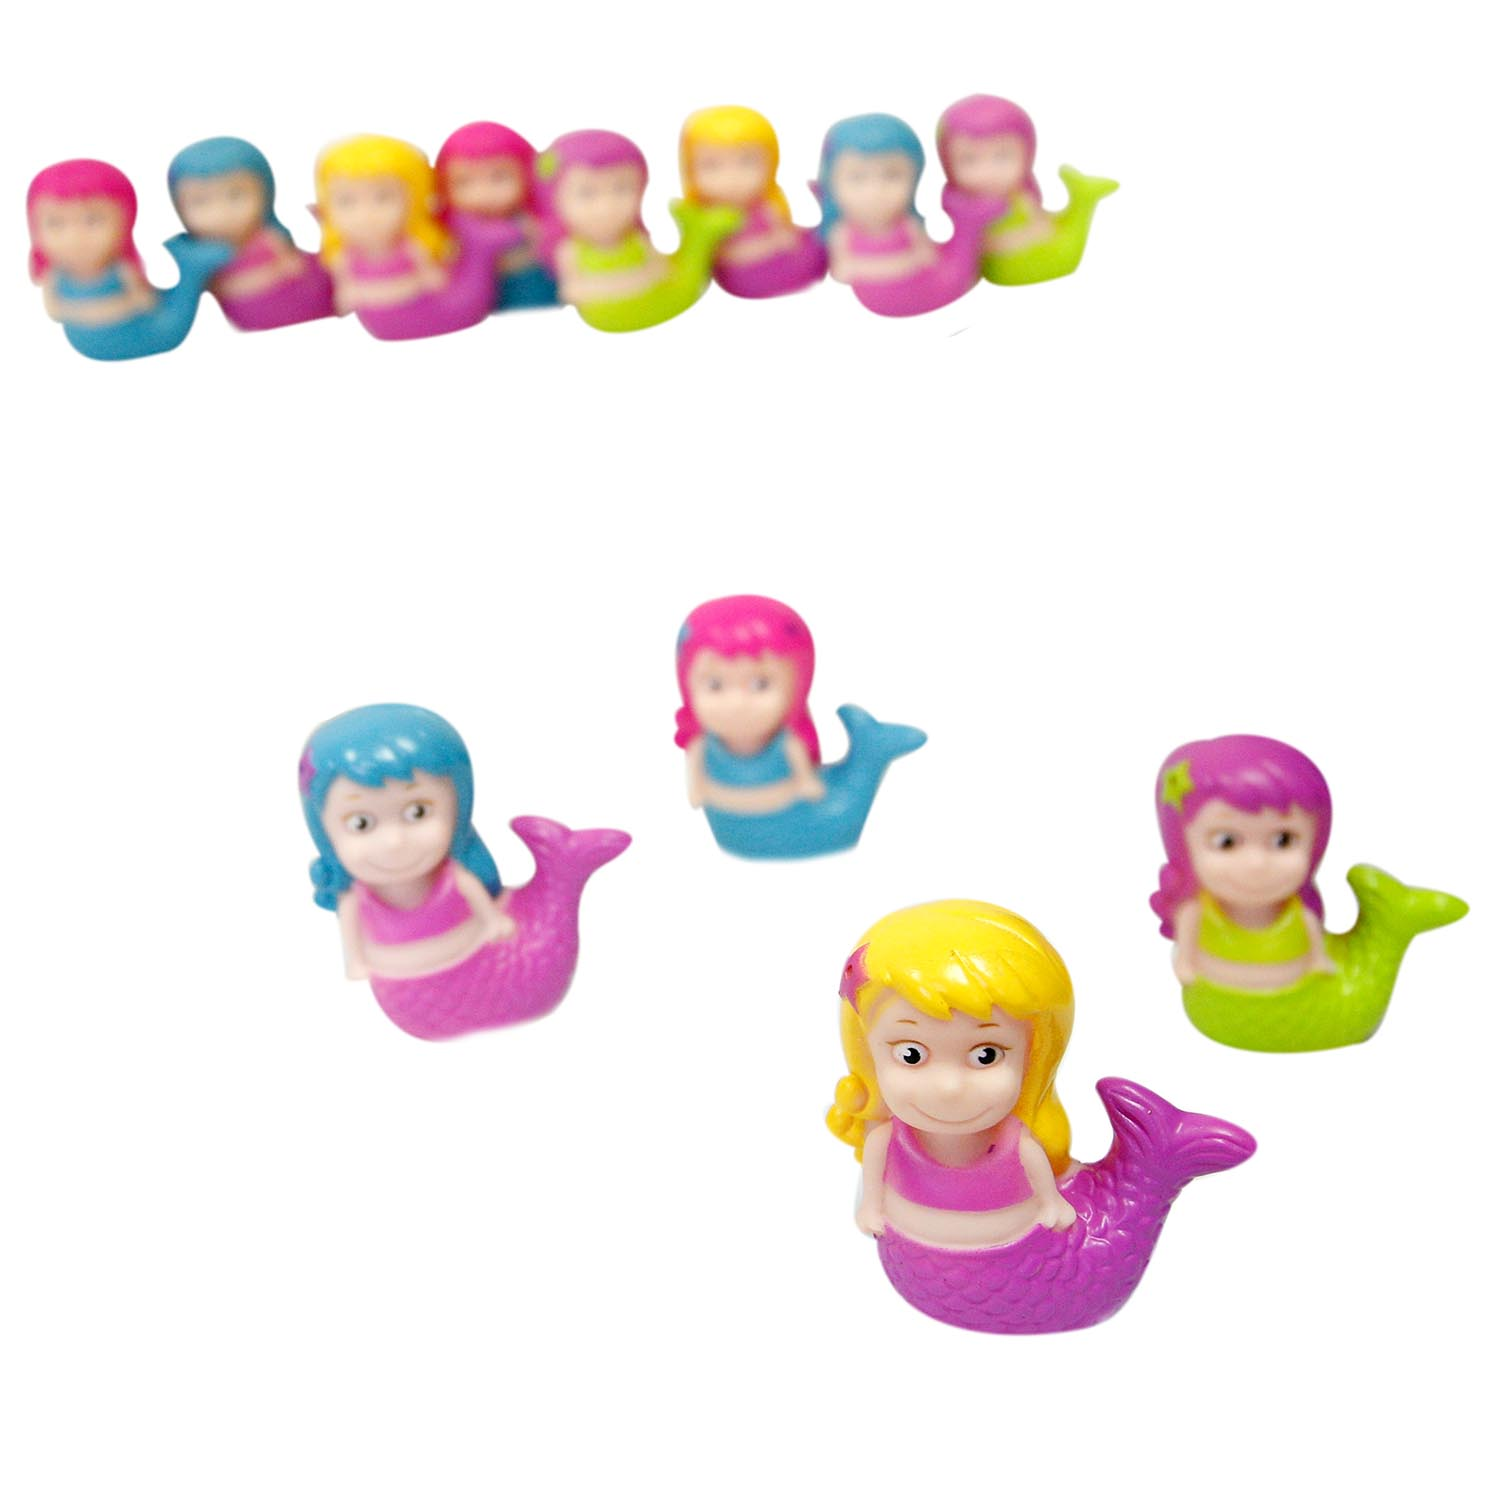 Mermaid Squirt Toys 746-1004